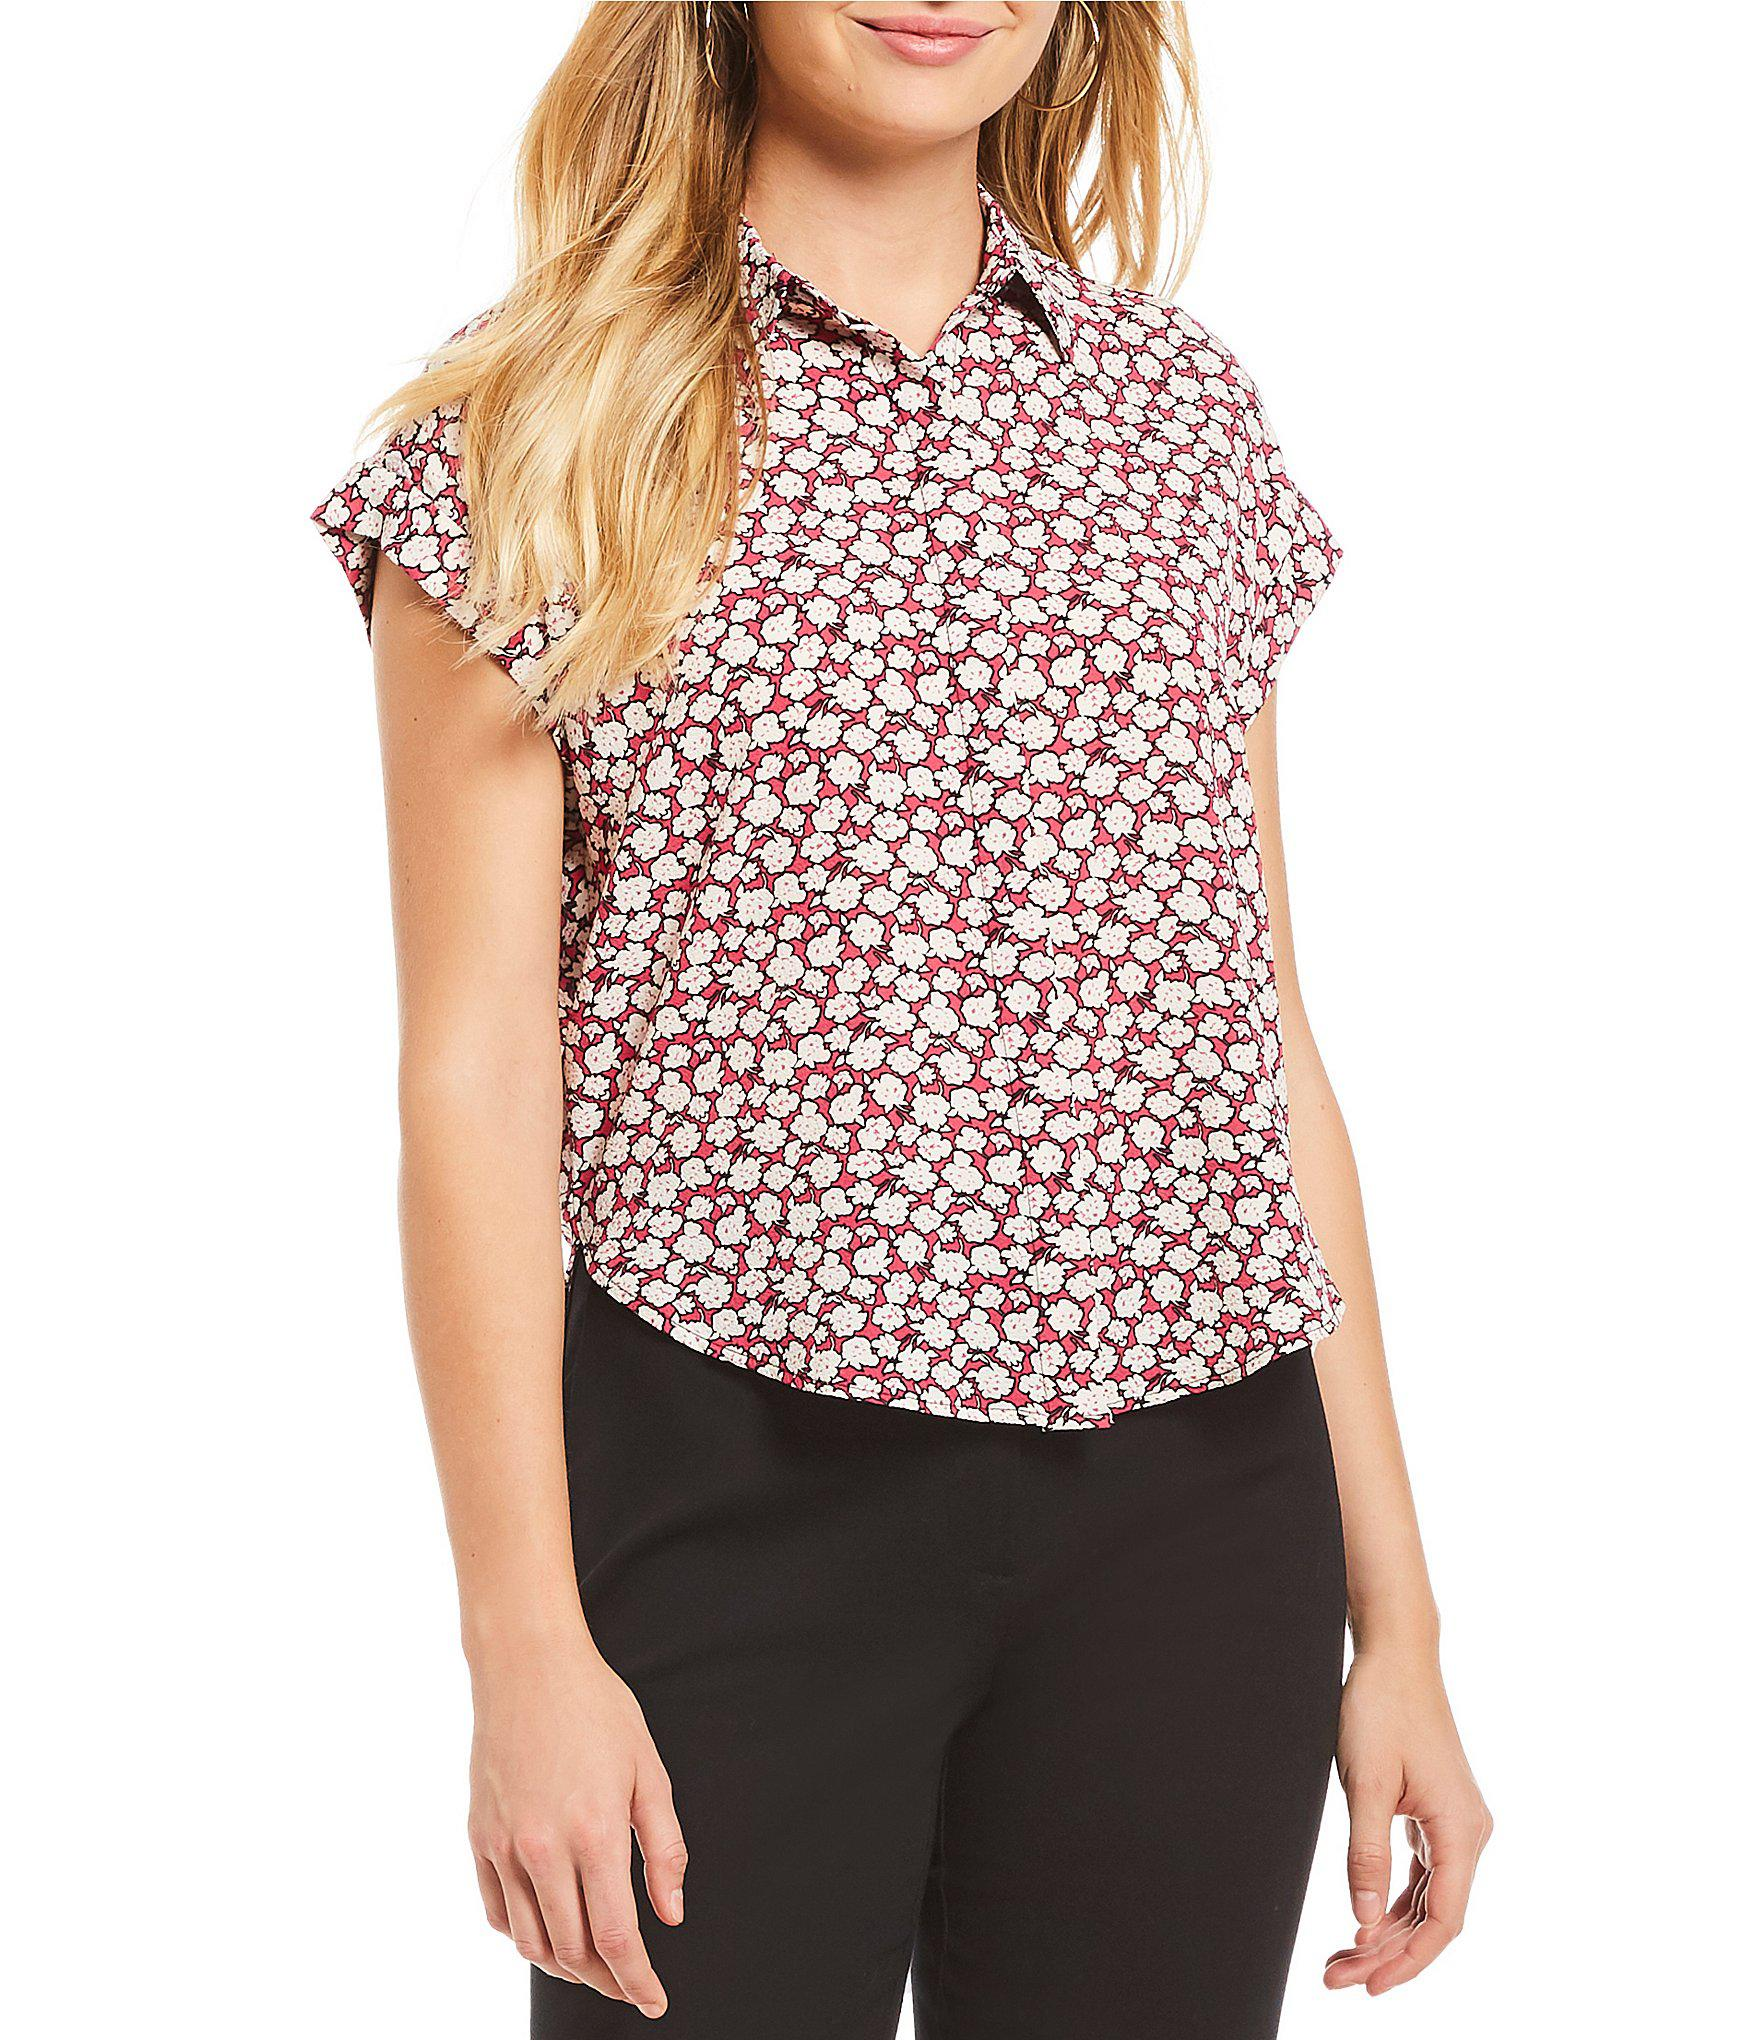 719ccc7168 Lyst - Jones New York Floral Print Hi-low Shirttail Hem Button Back ...